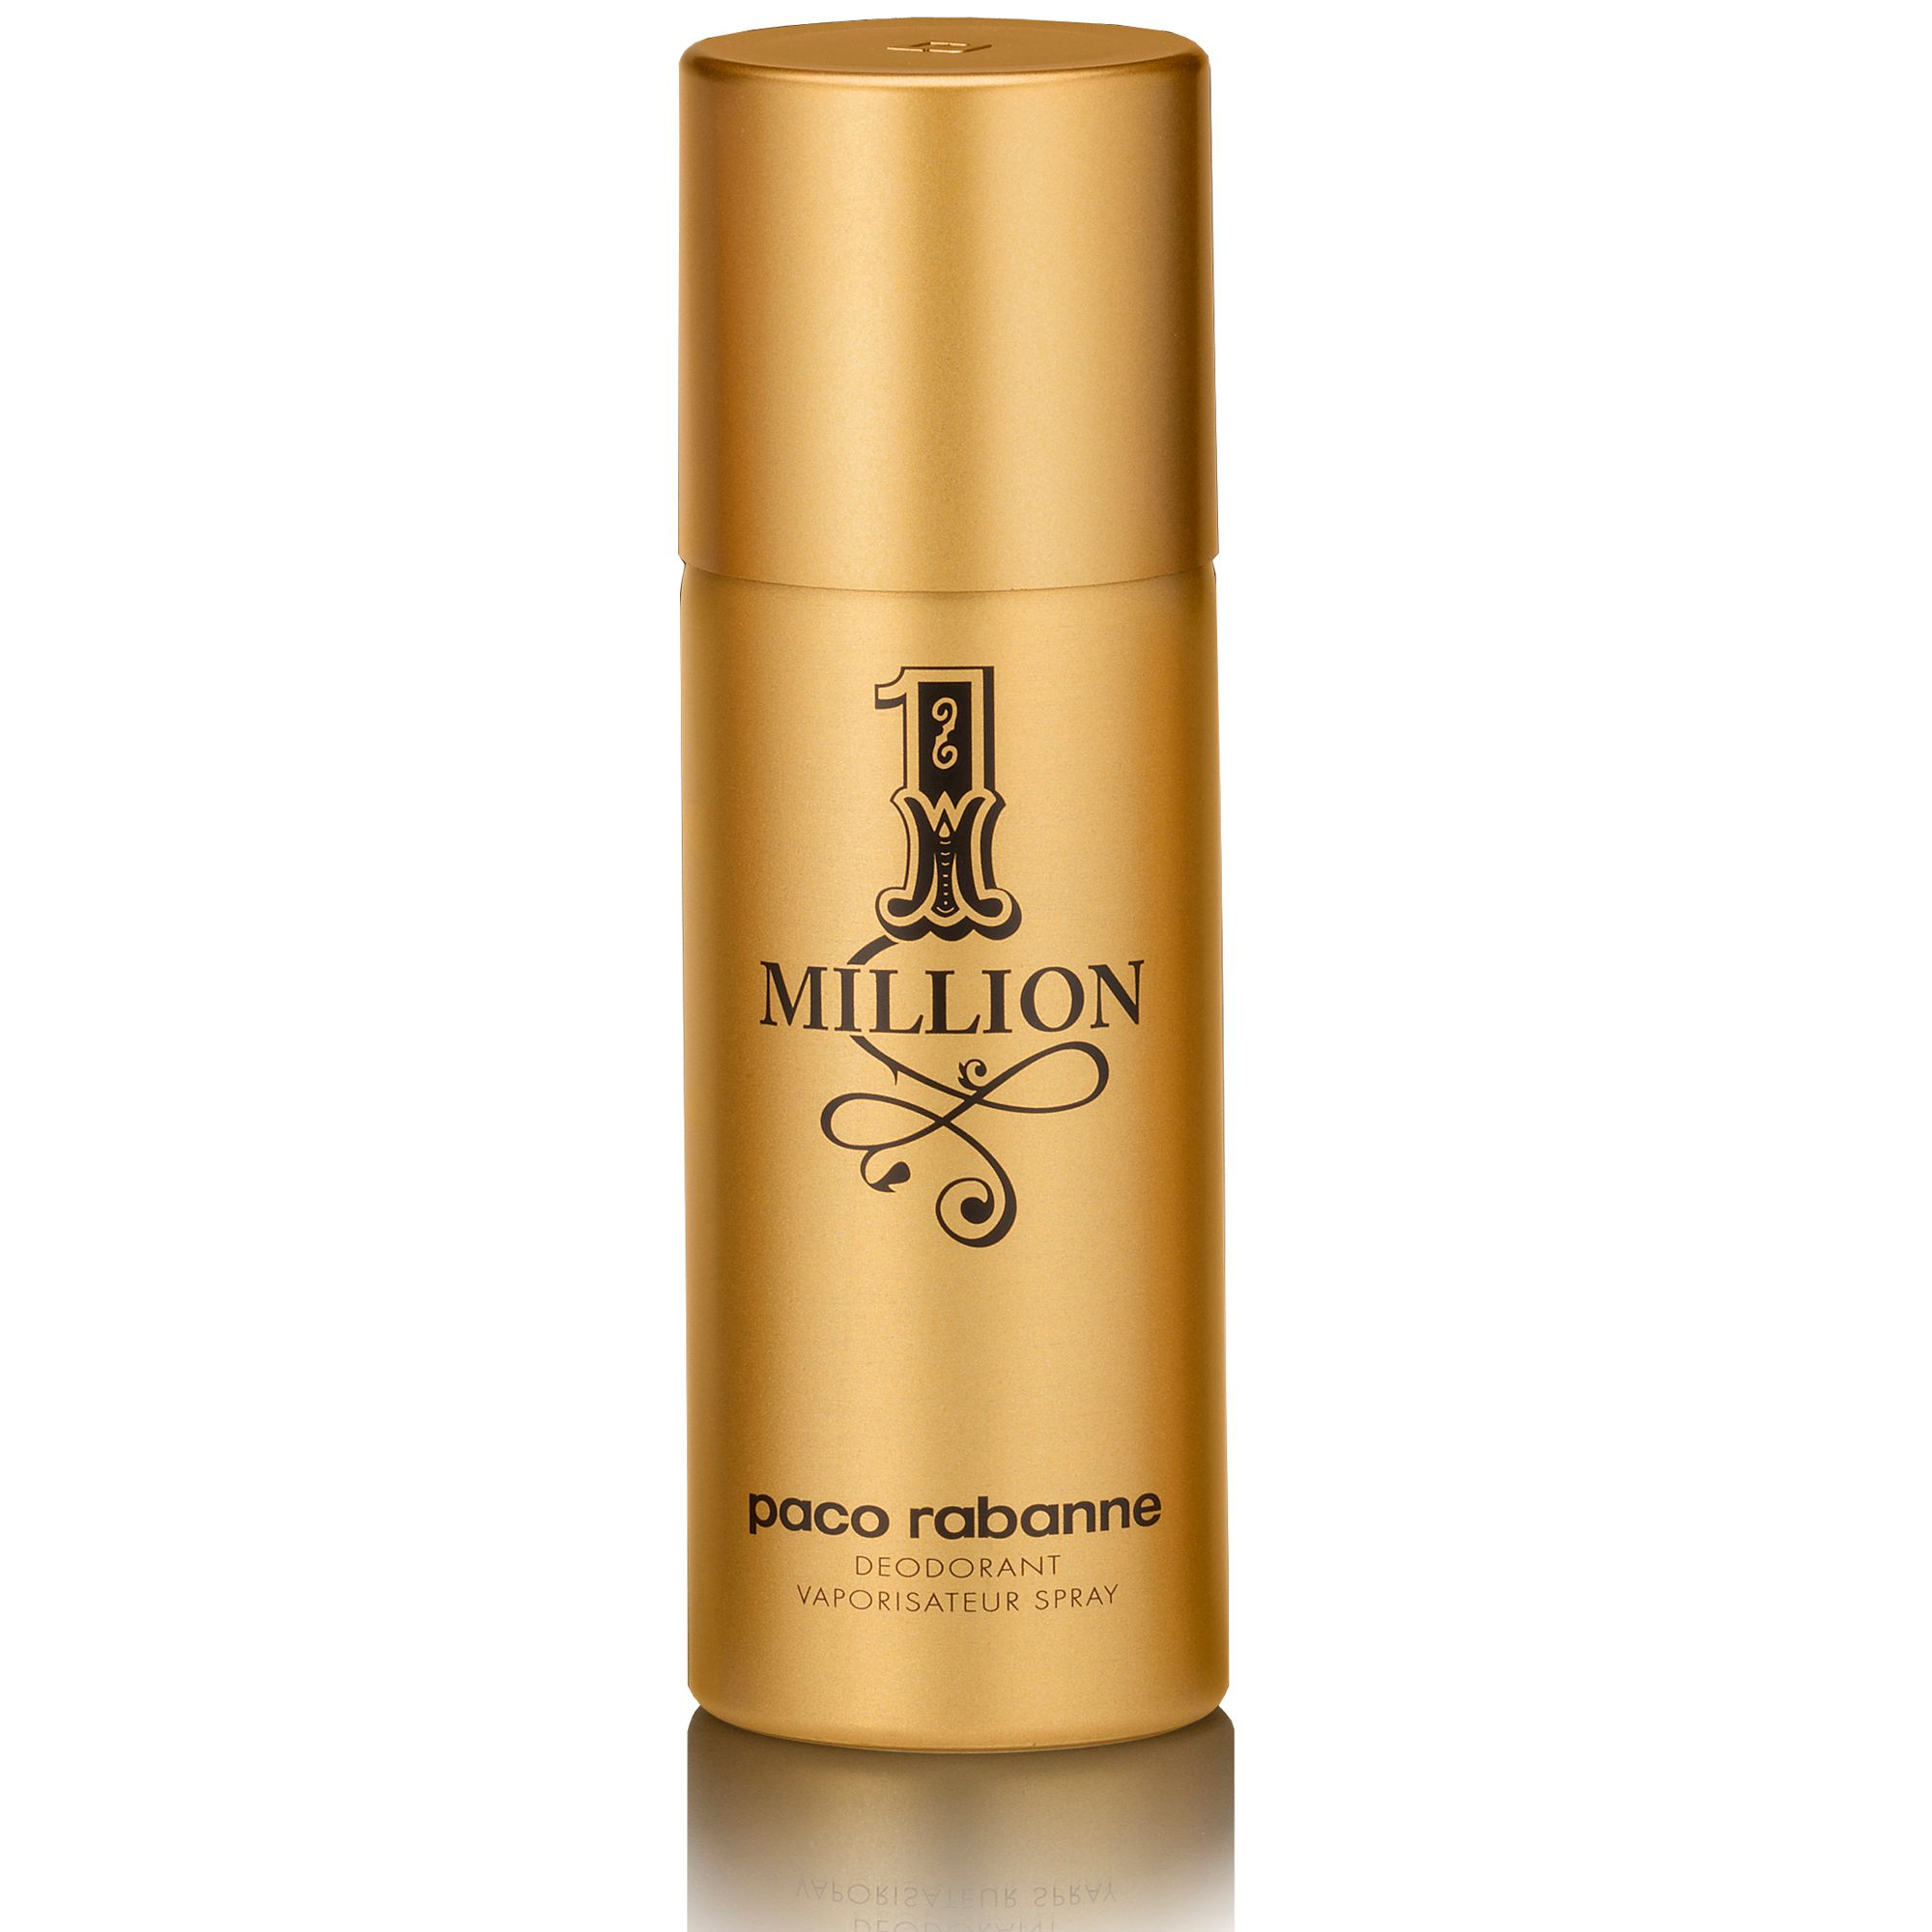 1Million deodorant spray 150ml